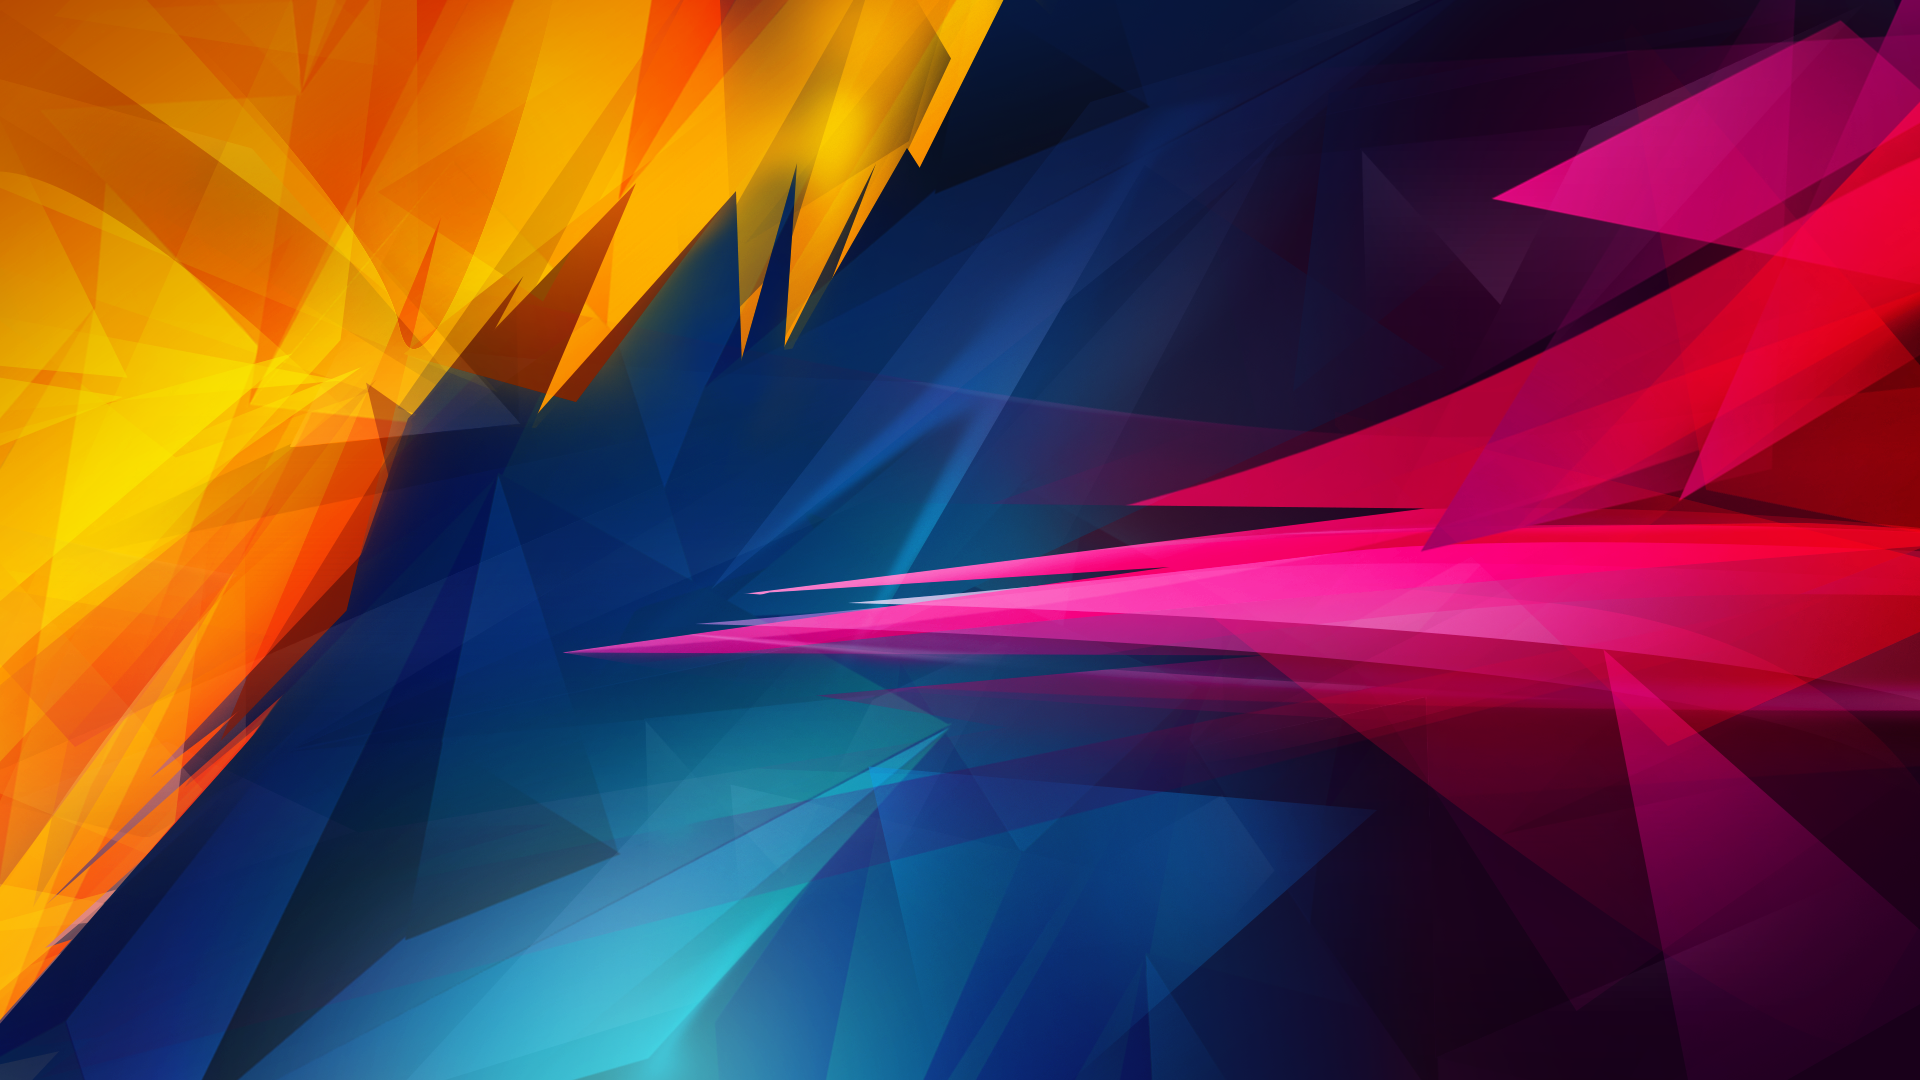 Abstract wallpaper 47342 1920x1080 px hdwallsource abstract wallpaper 47342 voltagebd Image collections